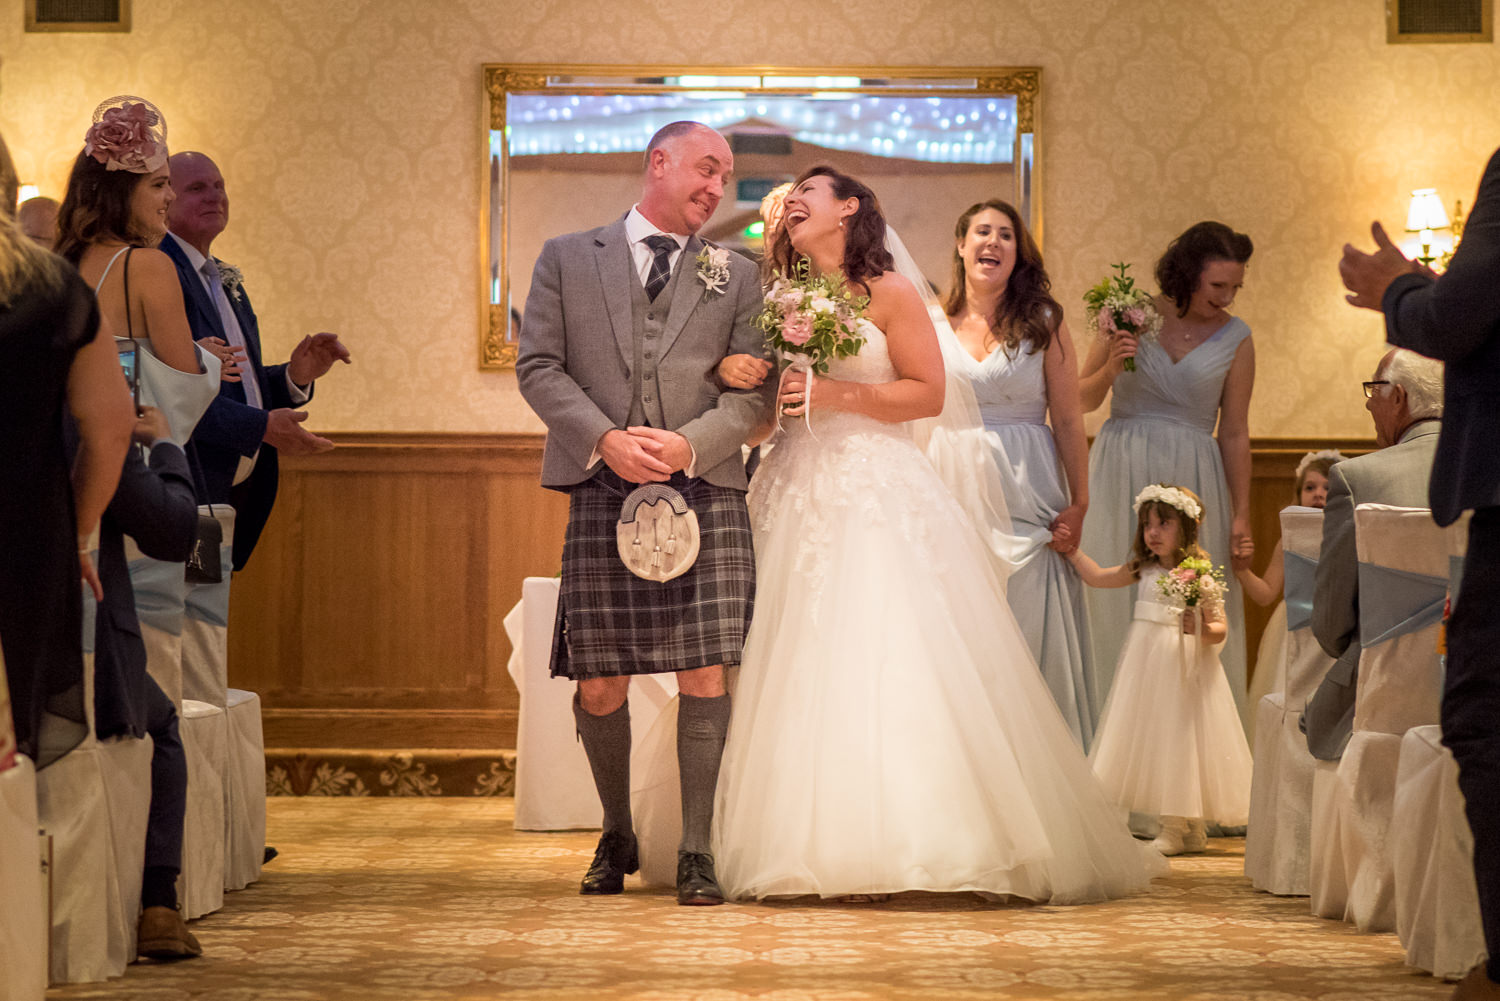 Bride and groom walking down the aisle at Ashdown Park Hotel